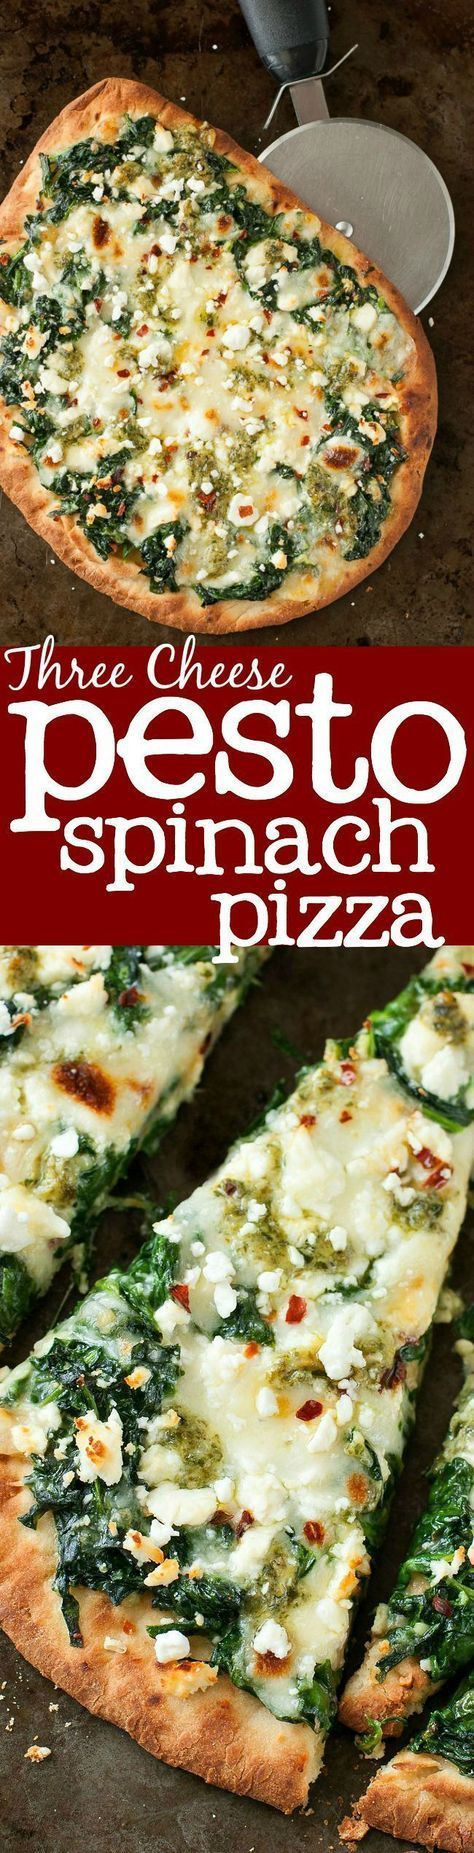 Three Cheese Pesto Spinach Flatbread Pizza :: alternate title: how to eat an entire 5oz box of spinach for lunch with out making a salad!